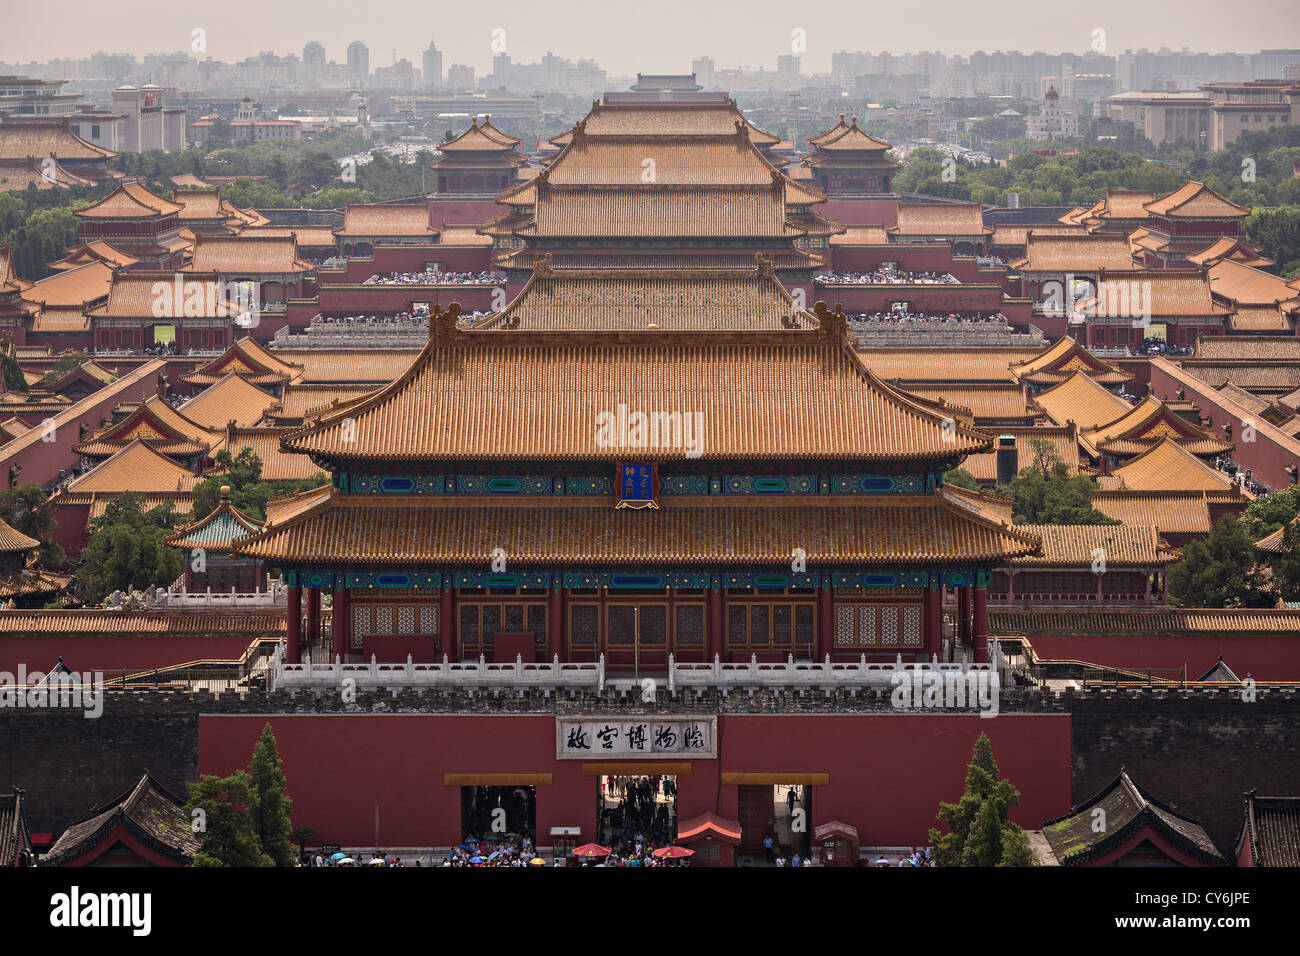 Aerial view of the Forbidden City as seen from Prospect Hill in Jing Shan Park during summer in Beijing, China Stock Photo